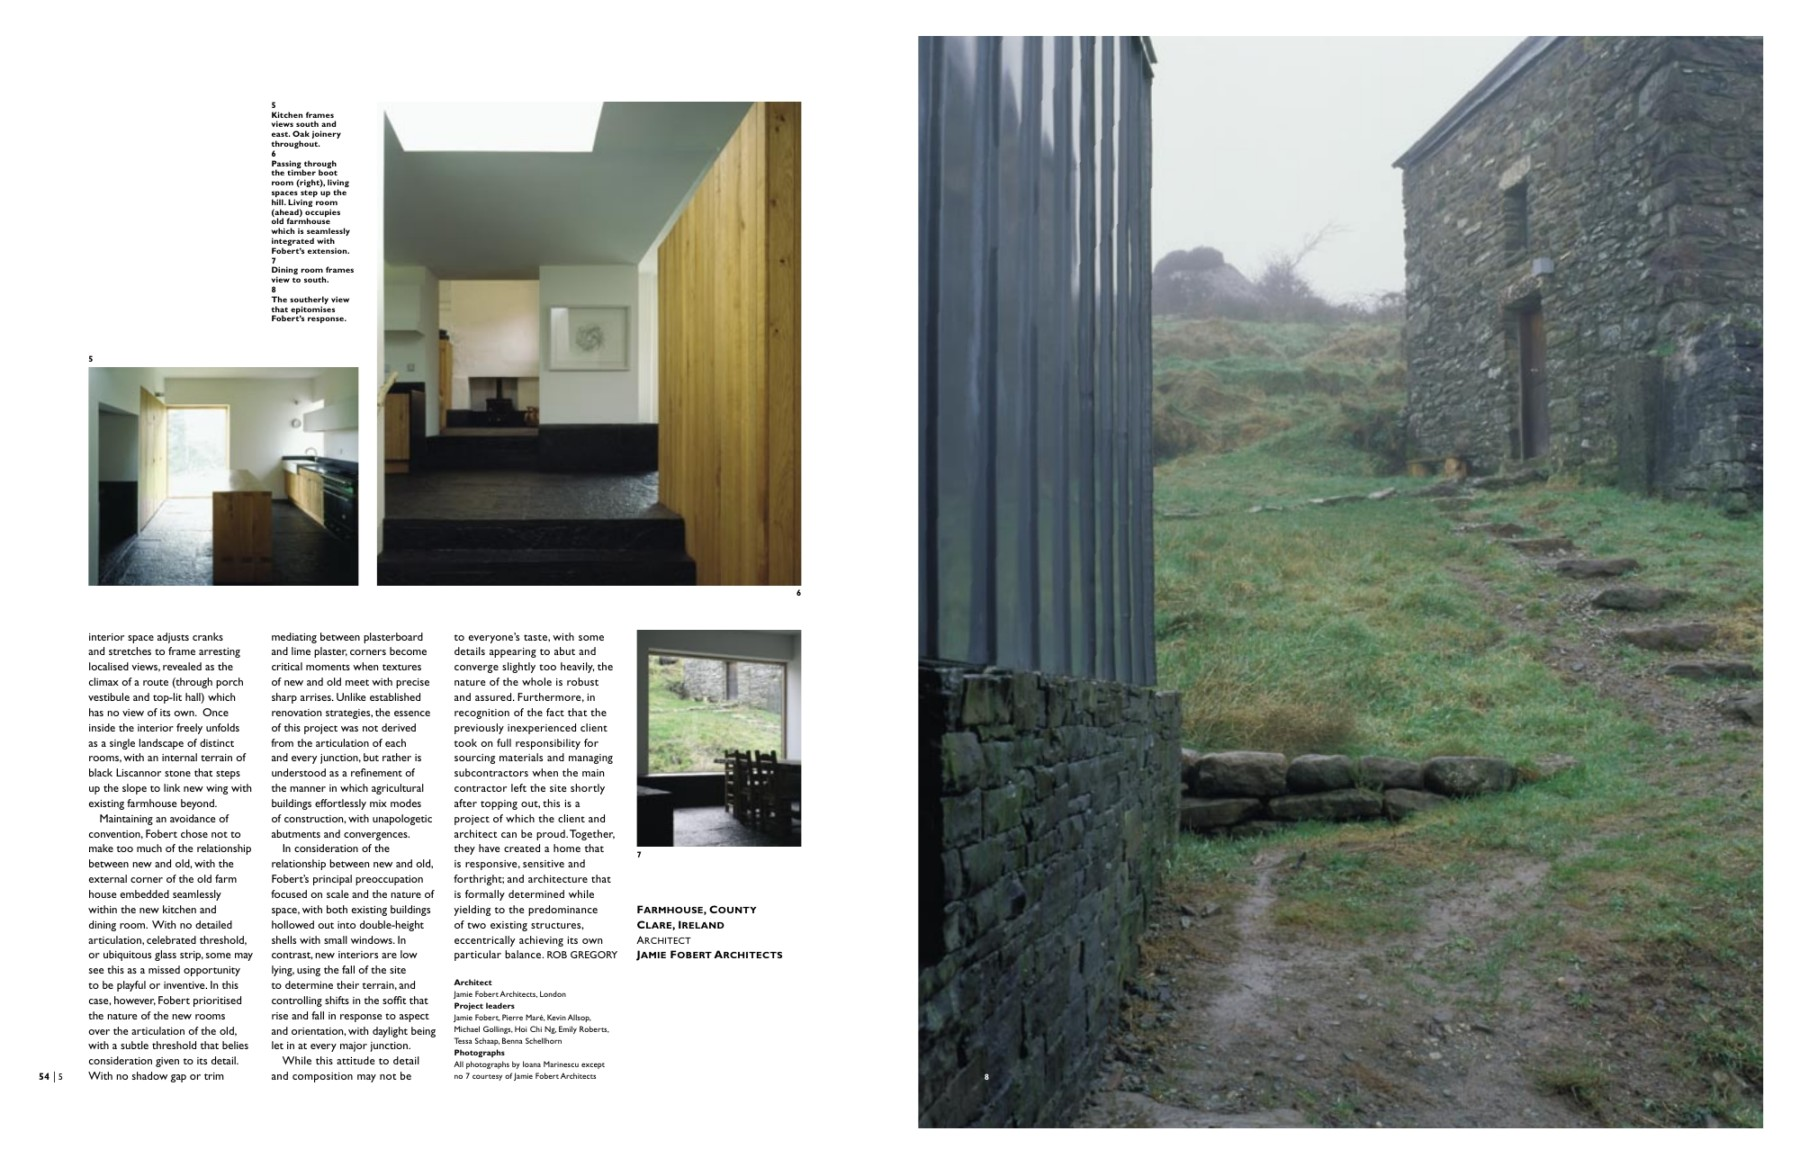 Jamie-Fobert-Architects-The-Good-Life-Architectural-Review-Article-Press (1)